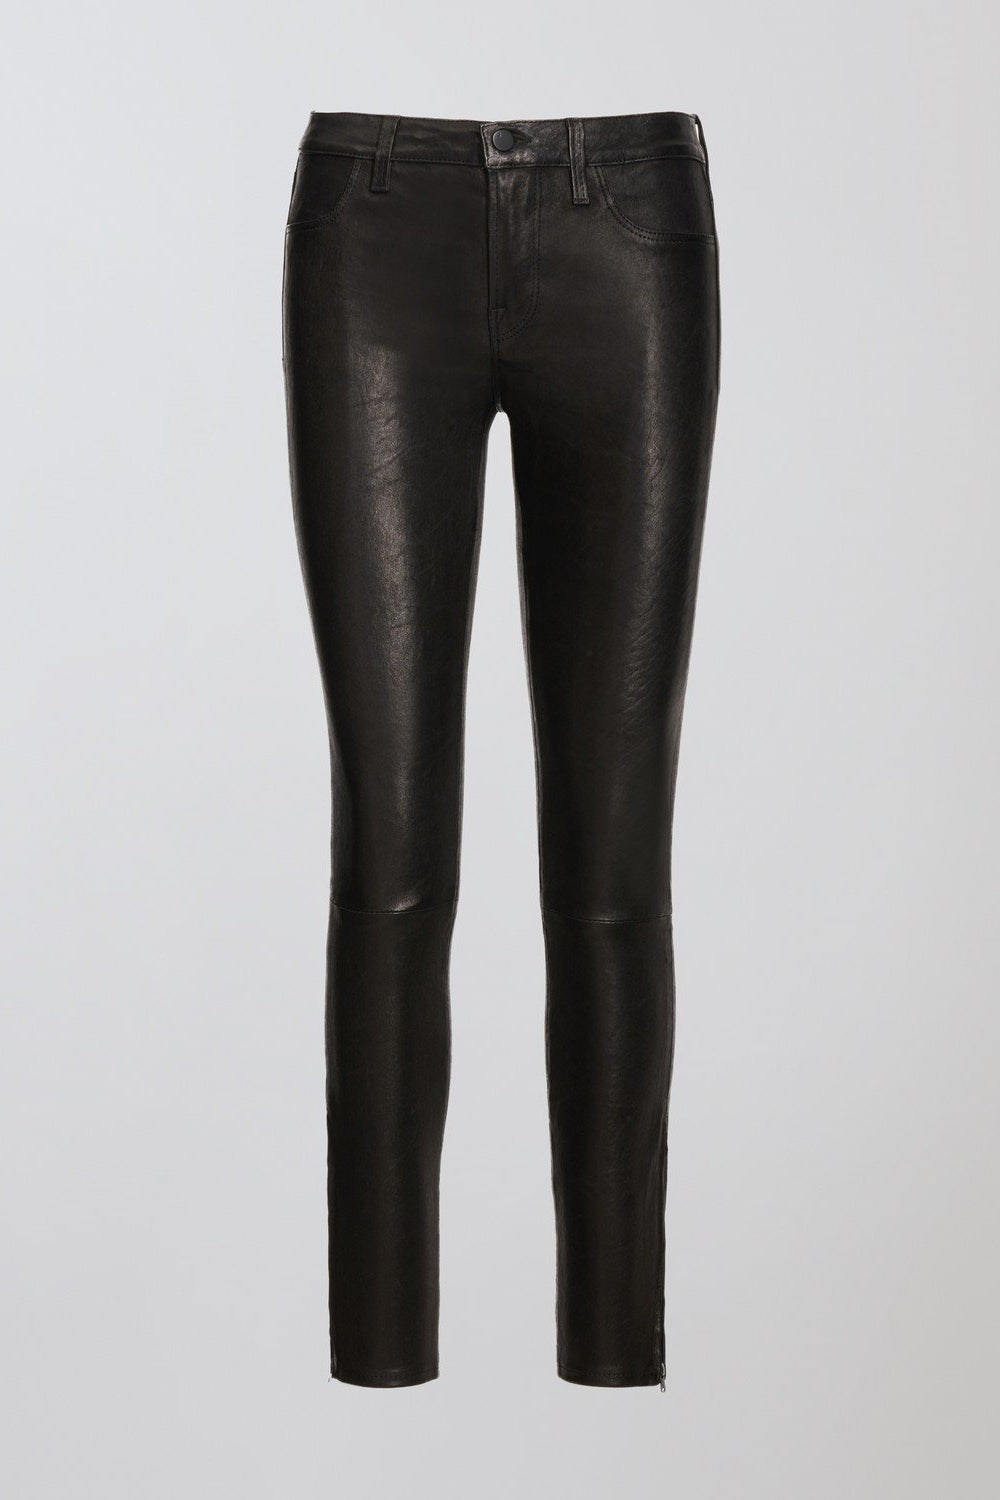 L8001 Mid-Rise Skinny Pant in Noir Leather